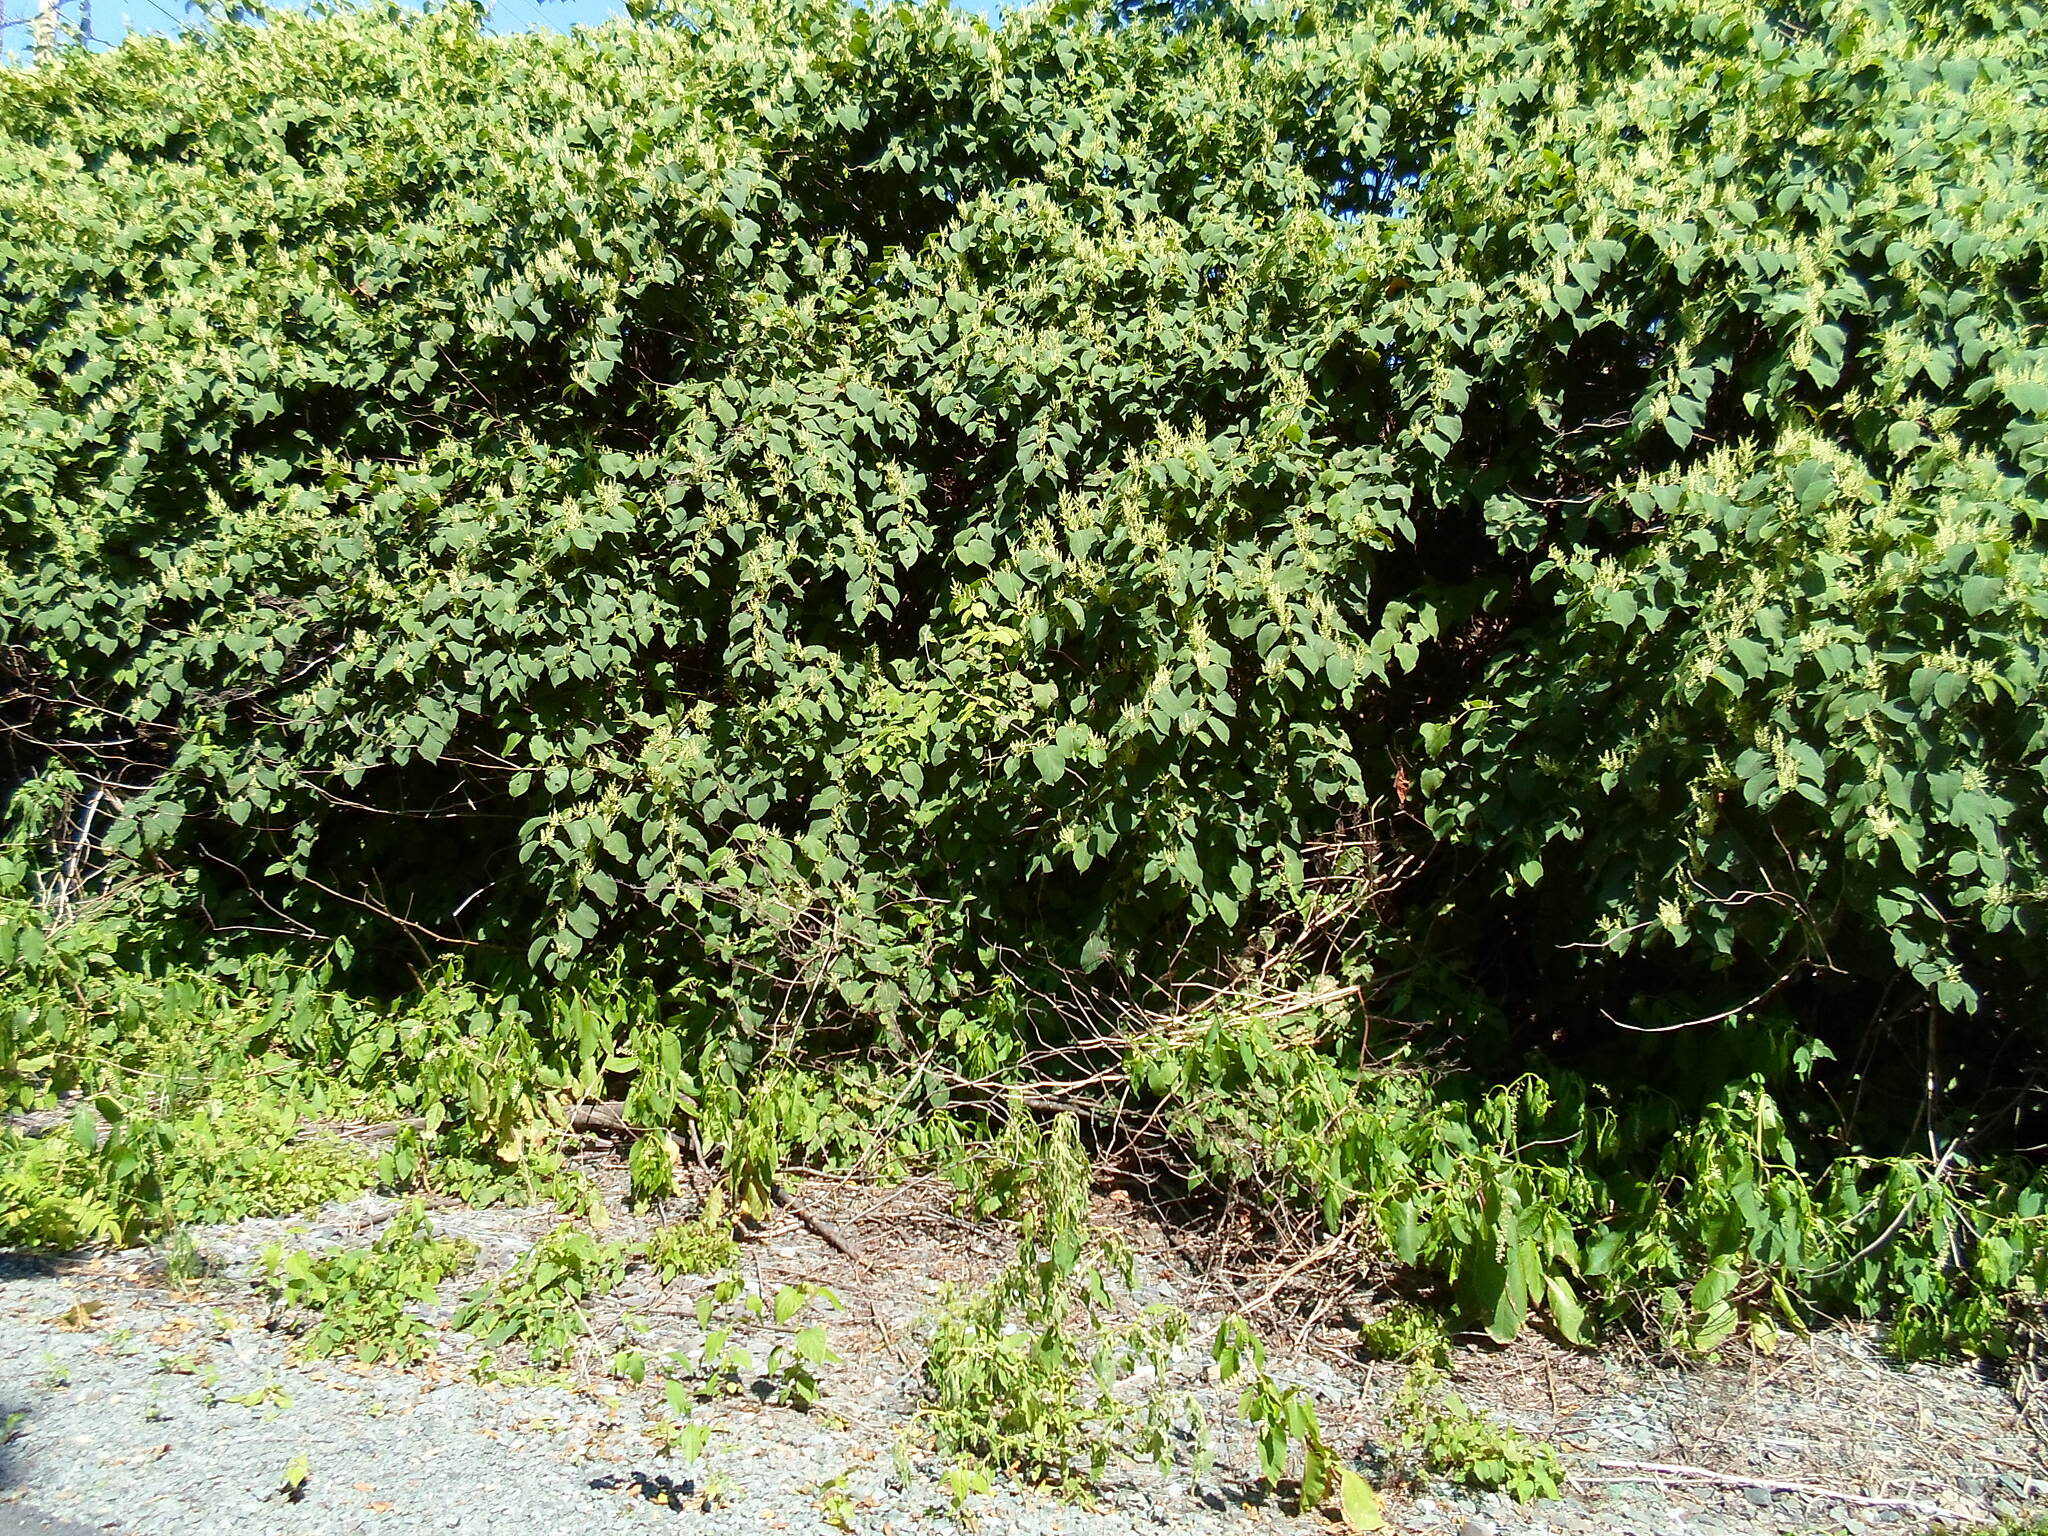 Muhlenberg Rail Trail Muhlenberg Rail Trail I'm not good with identifying plants, so I'm not sure what this is (rhododendron? mountain laurel?), but its growth off the trail just north of the Elizabeth Street bridge is impressive.